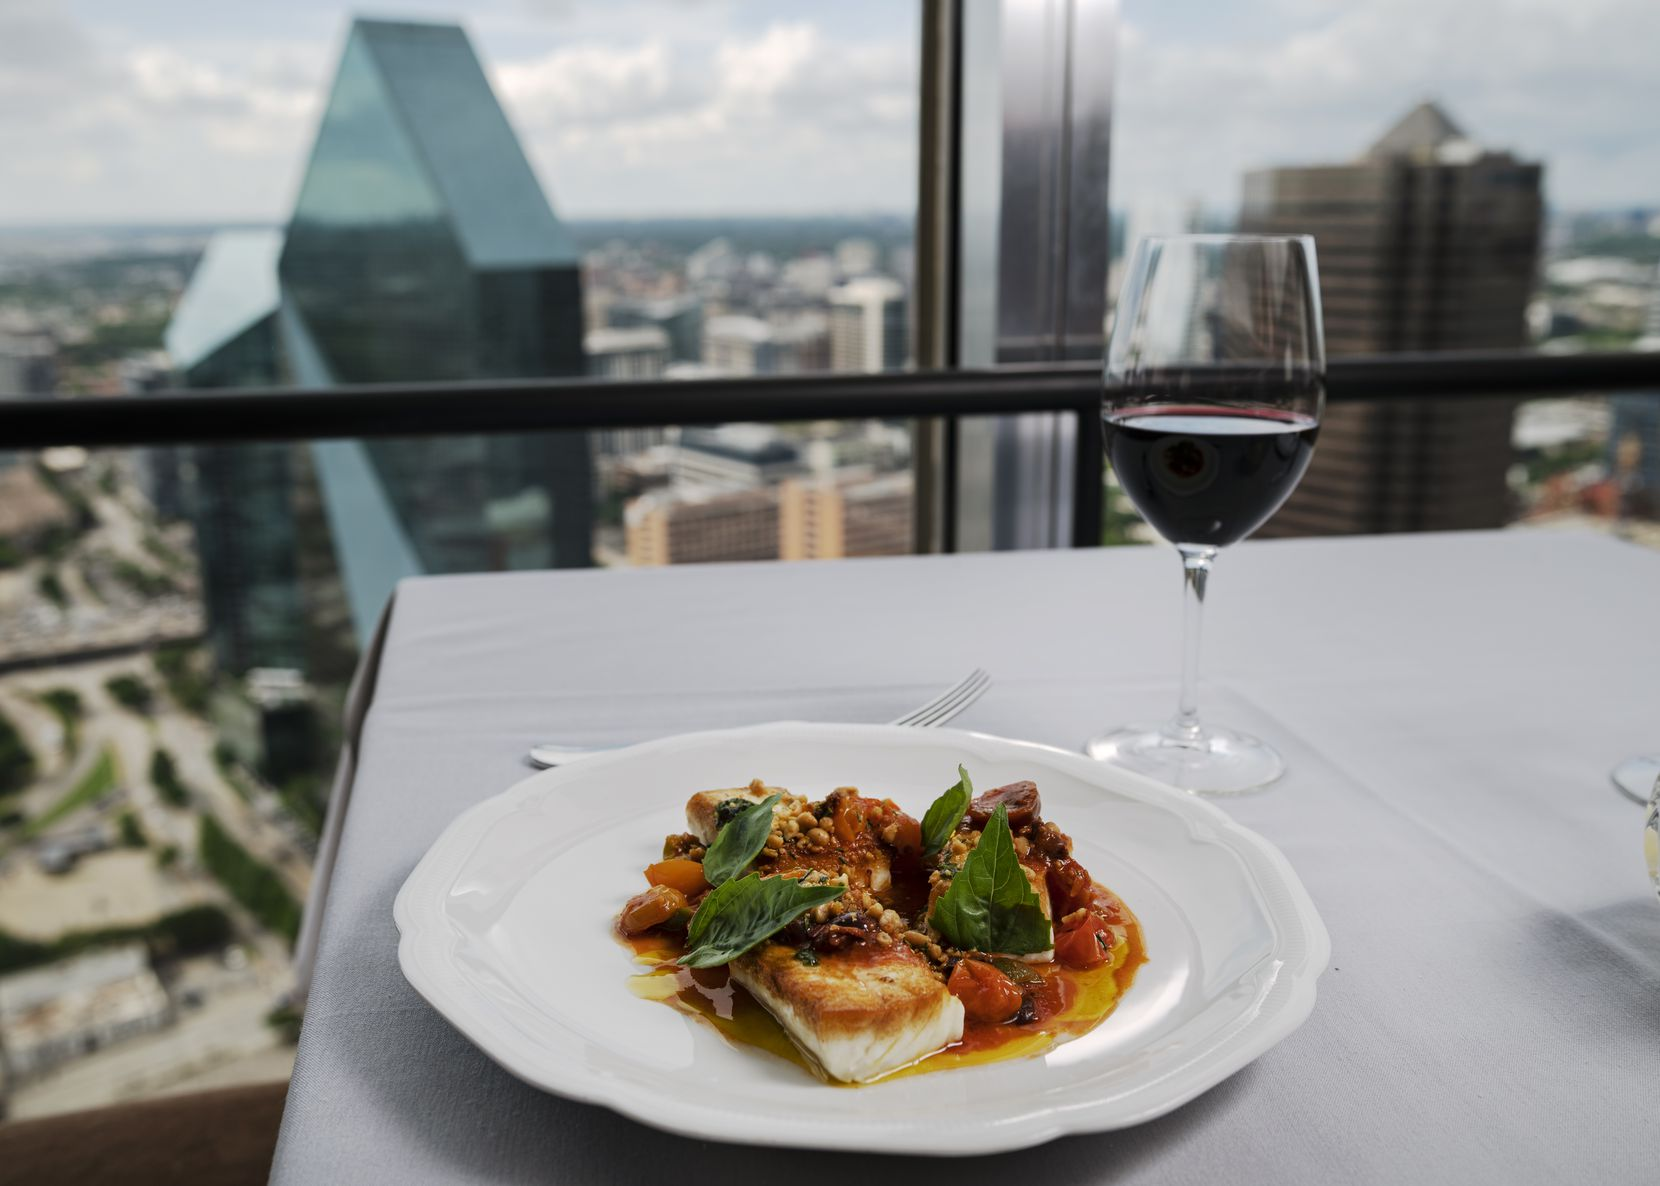 Roasted Halibut with tomato and olive sauce from Chef Eric Dreyer at Monarch restaurant in Downtown Dallas